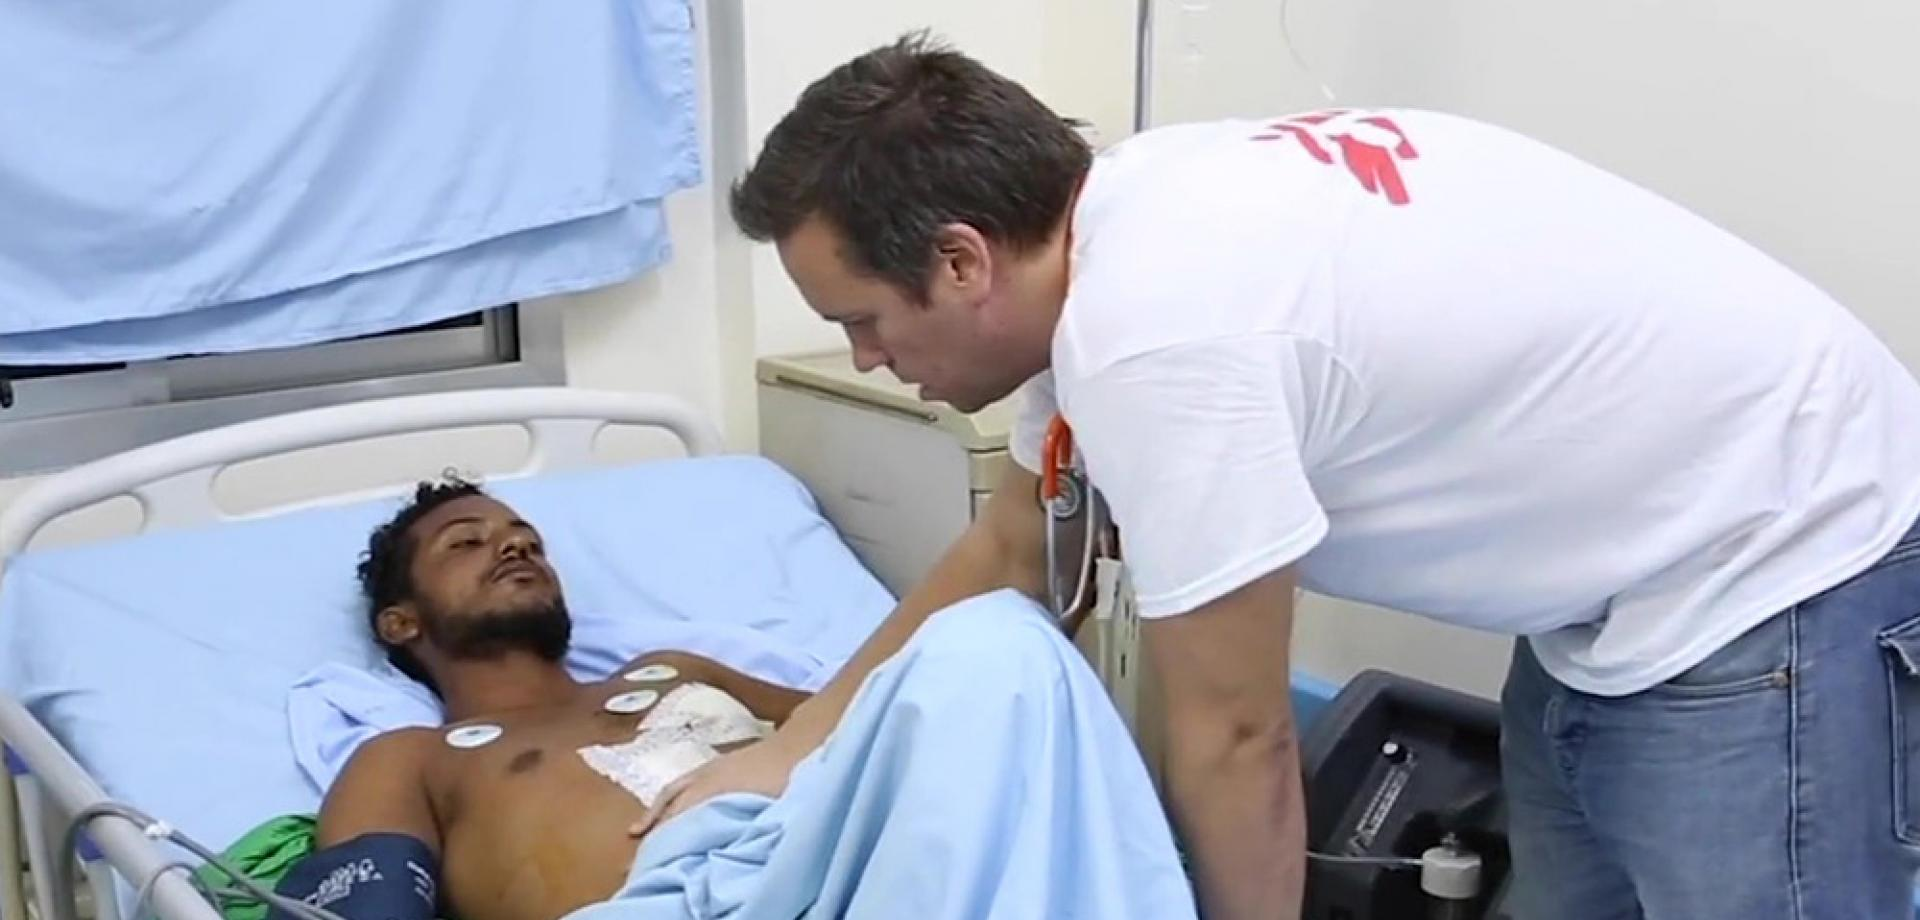 MSf doctor Chris Hook caring for a patient in Yemen